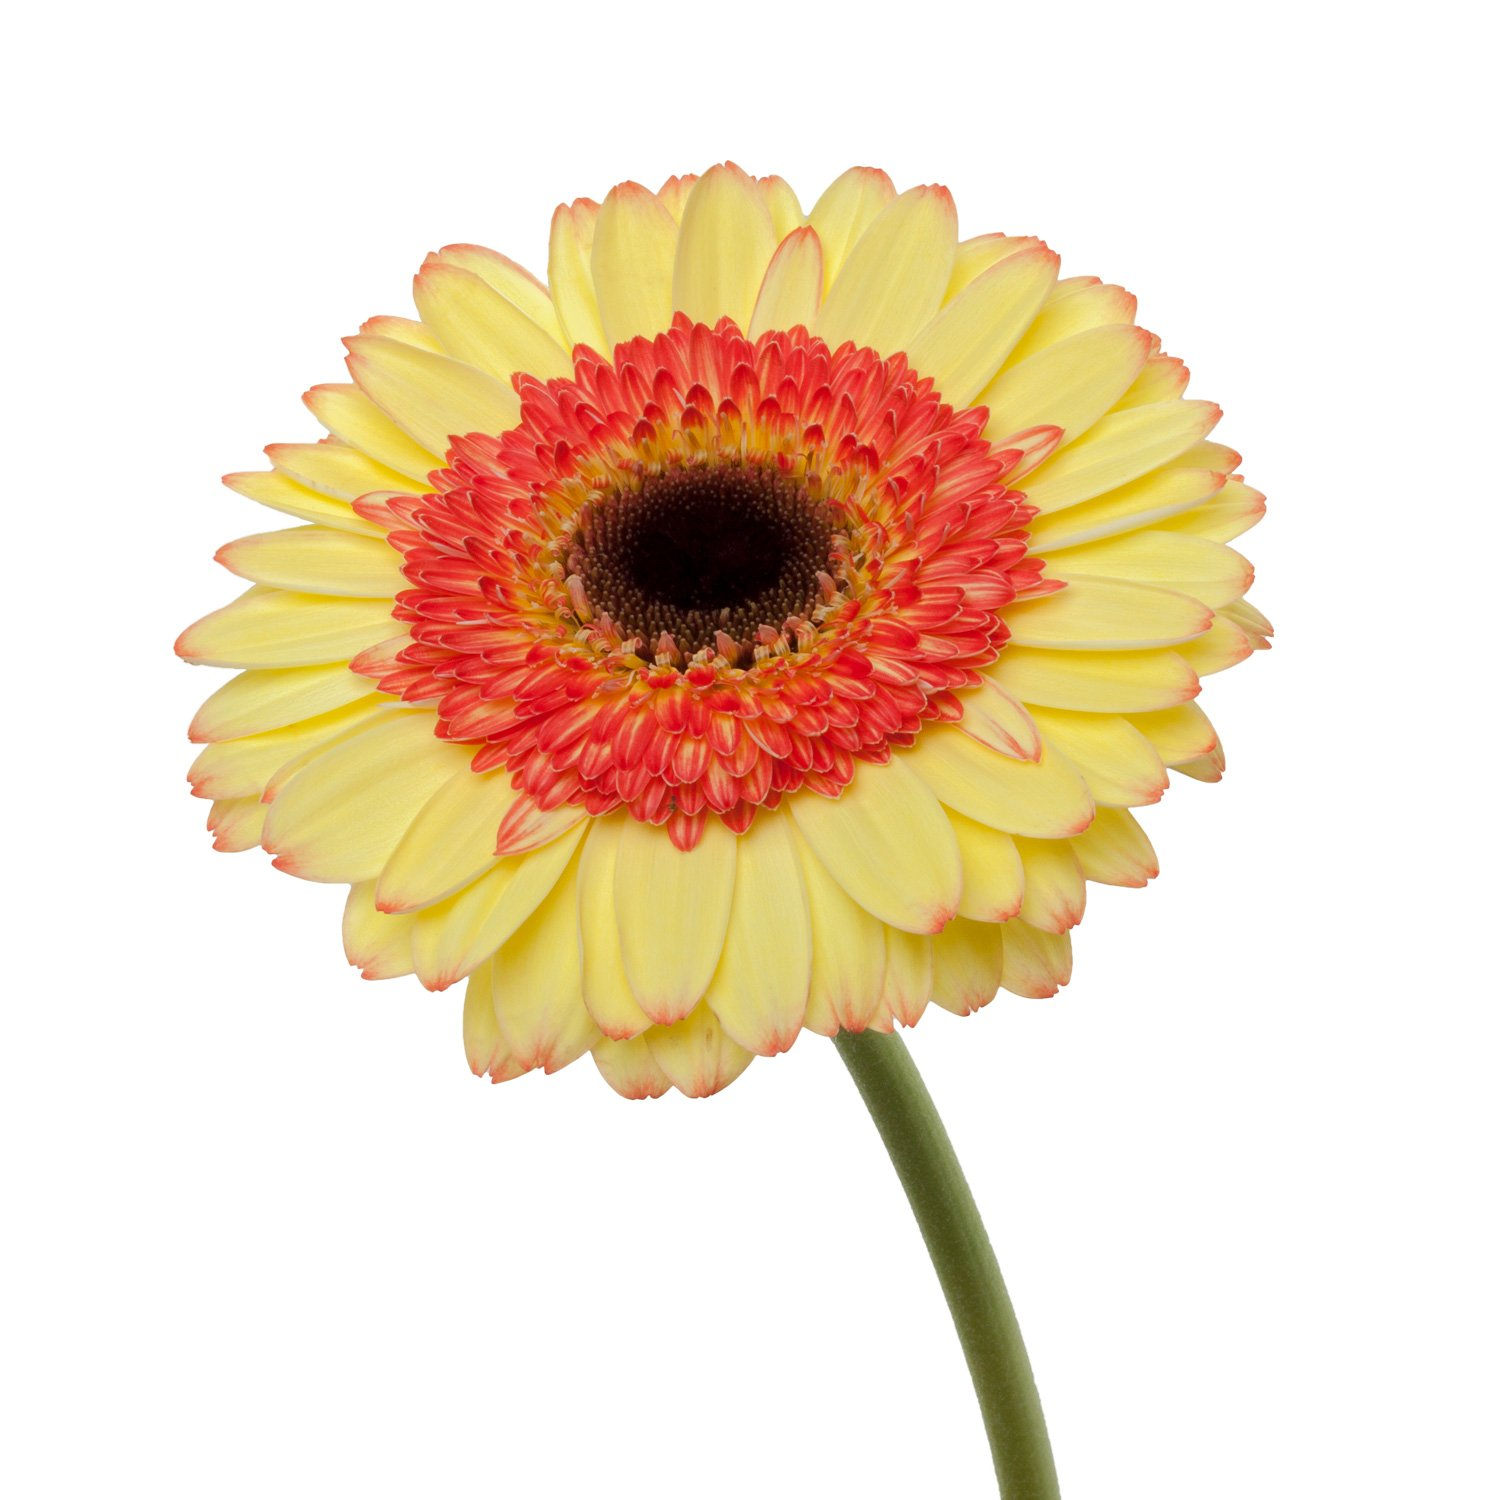 Gerbera Dark Center | BiColor - 80 Stem Count by Flower Farm Shop